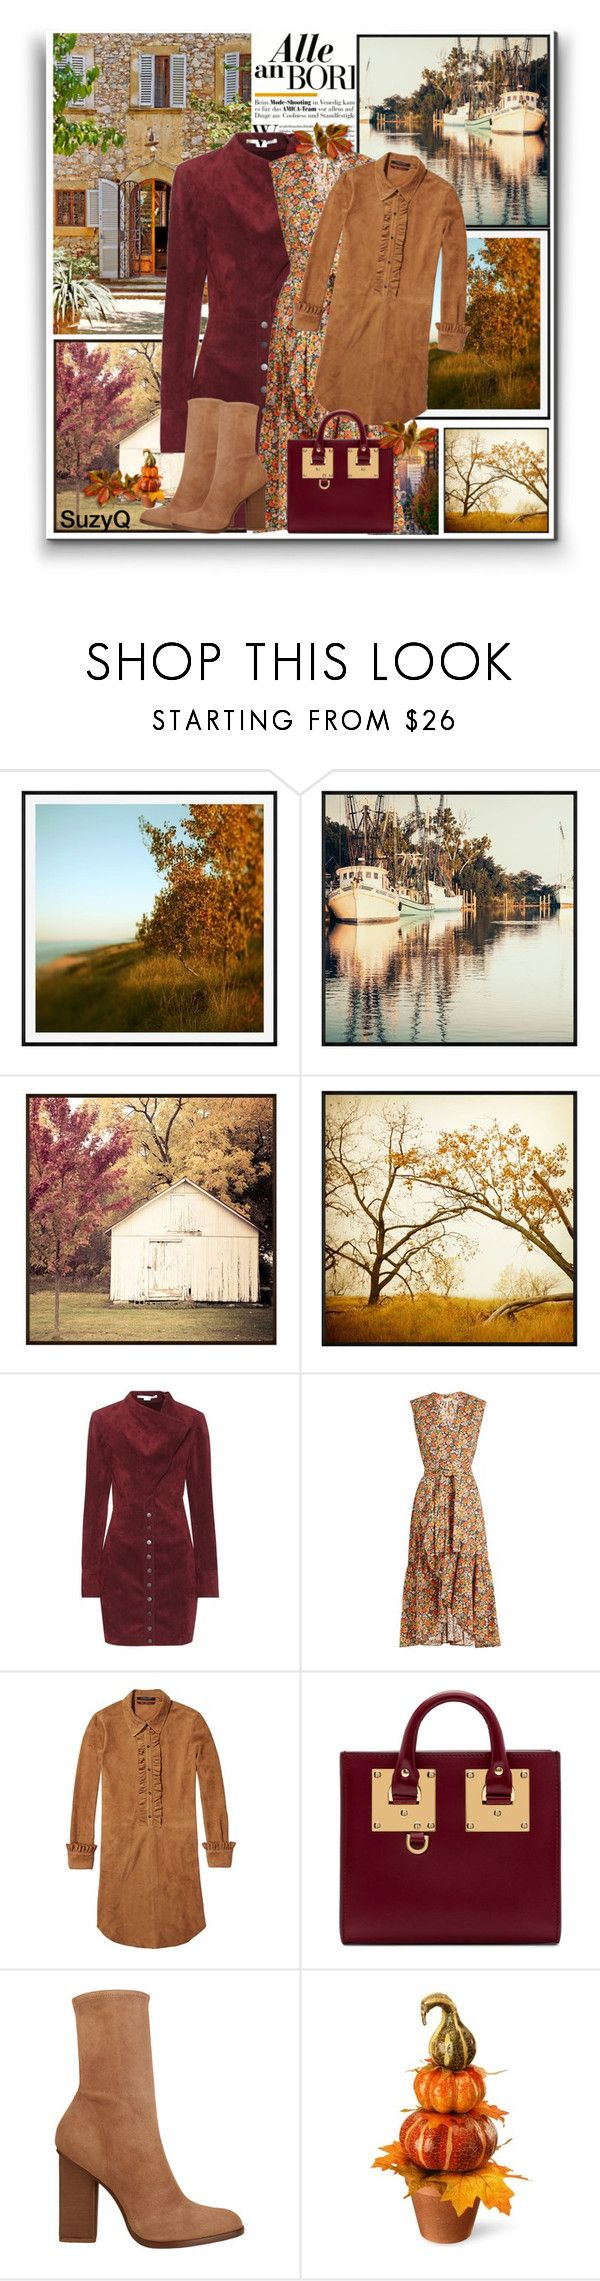 """""""🍂 Autumn Colors 🍂 DEEP RED"""" by polyvore-suzyq ❤ liked on Polyvore featuring Pottery Barn, STELLA McCARTNEY, Rebecca Taylor, Sophie Hulme, Alexander Wang and National Tree Company"""